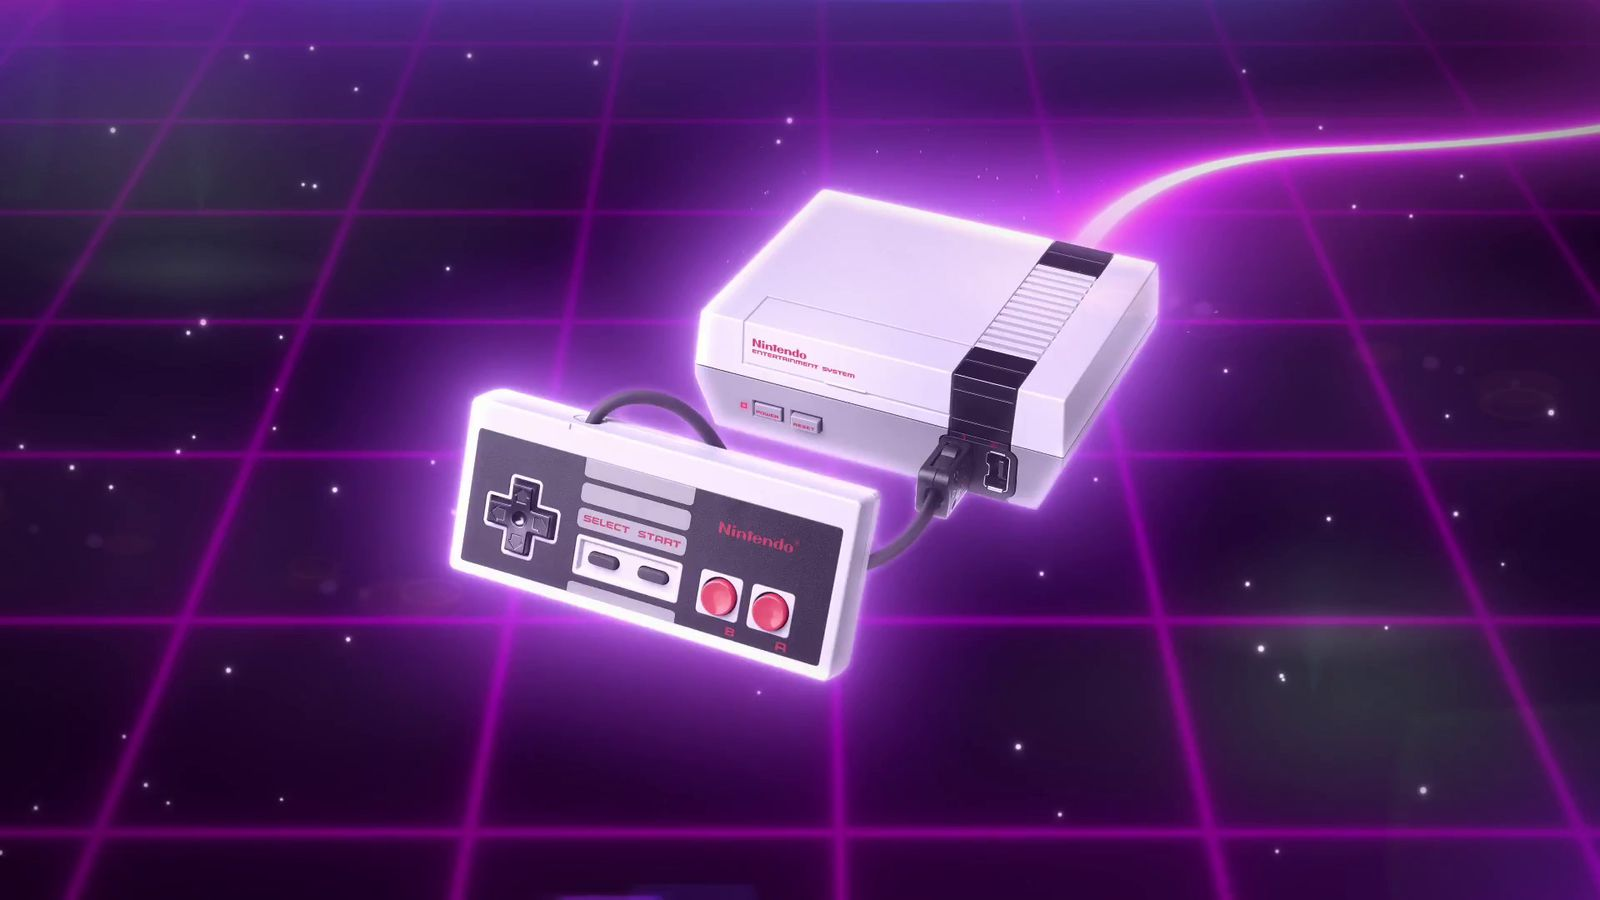 This Nes Classic Ad Is Appropriately 80s Tastic Polygon